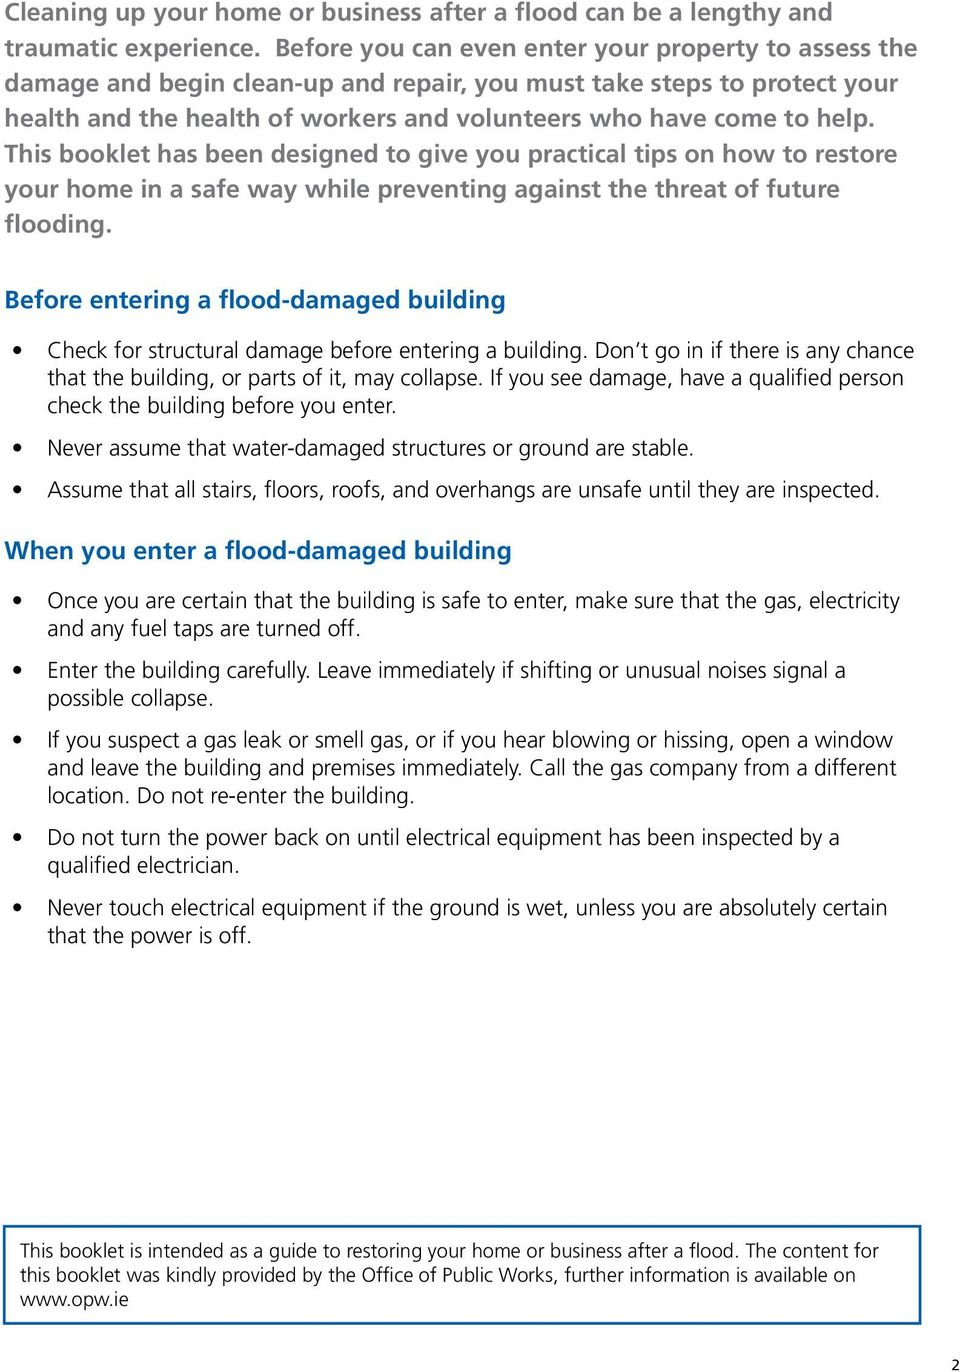 This booklet has been designed to give you practical tips on how to restore your home in a safe way while preventing against the threat of future flooding.